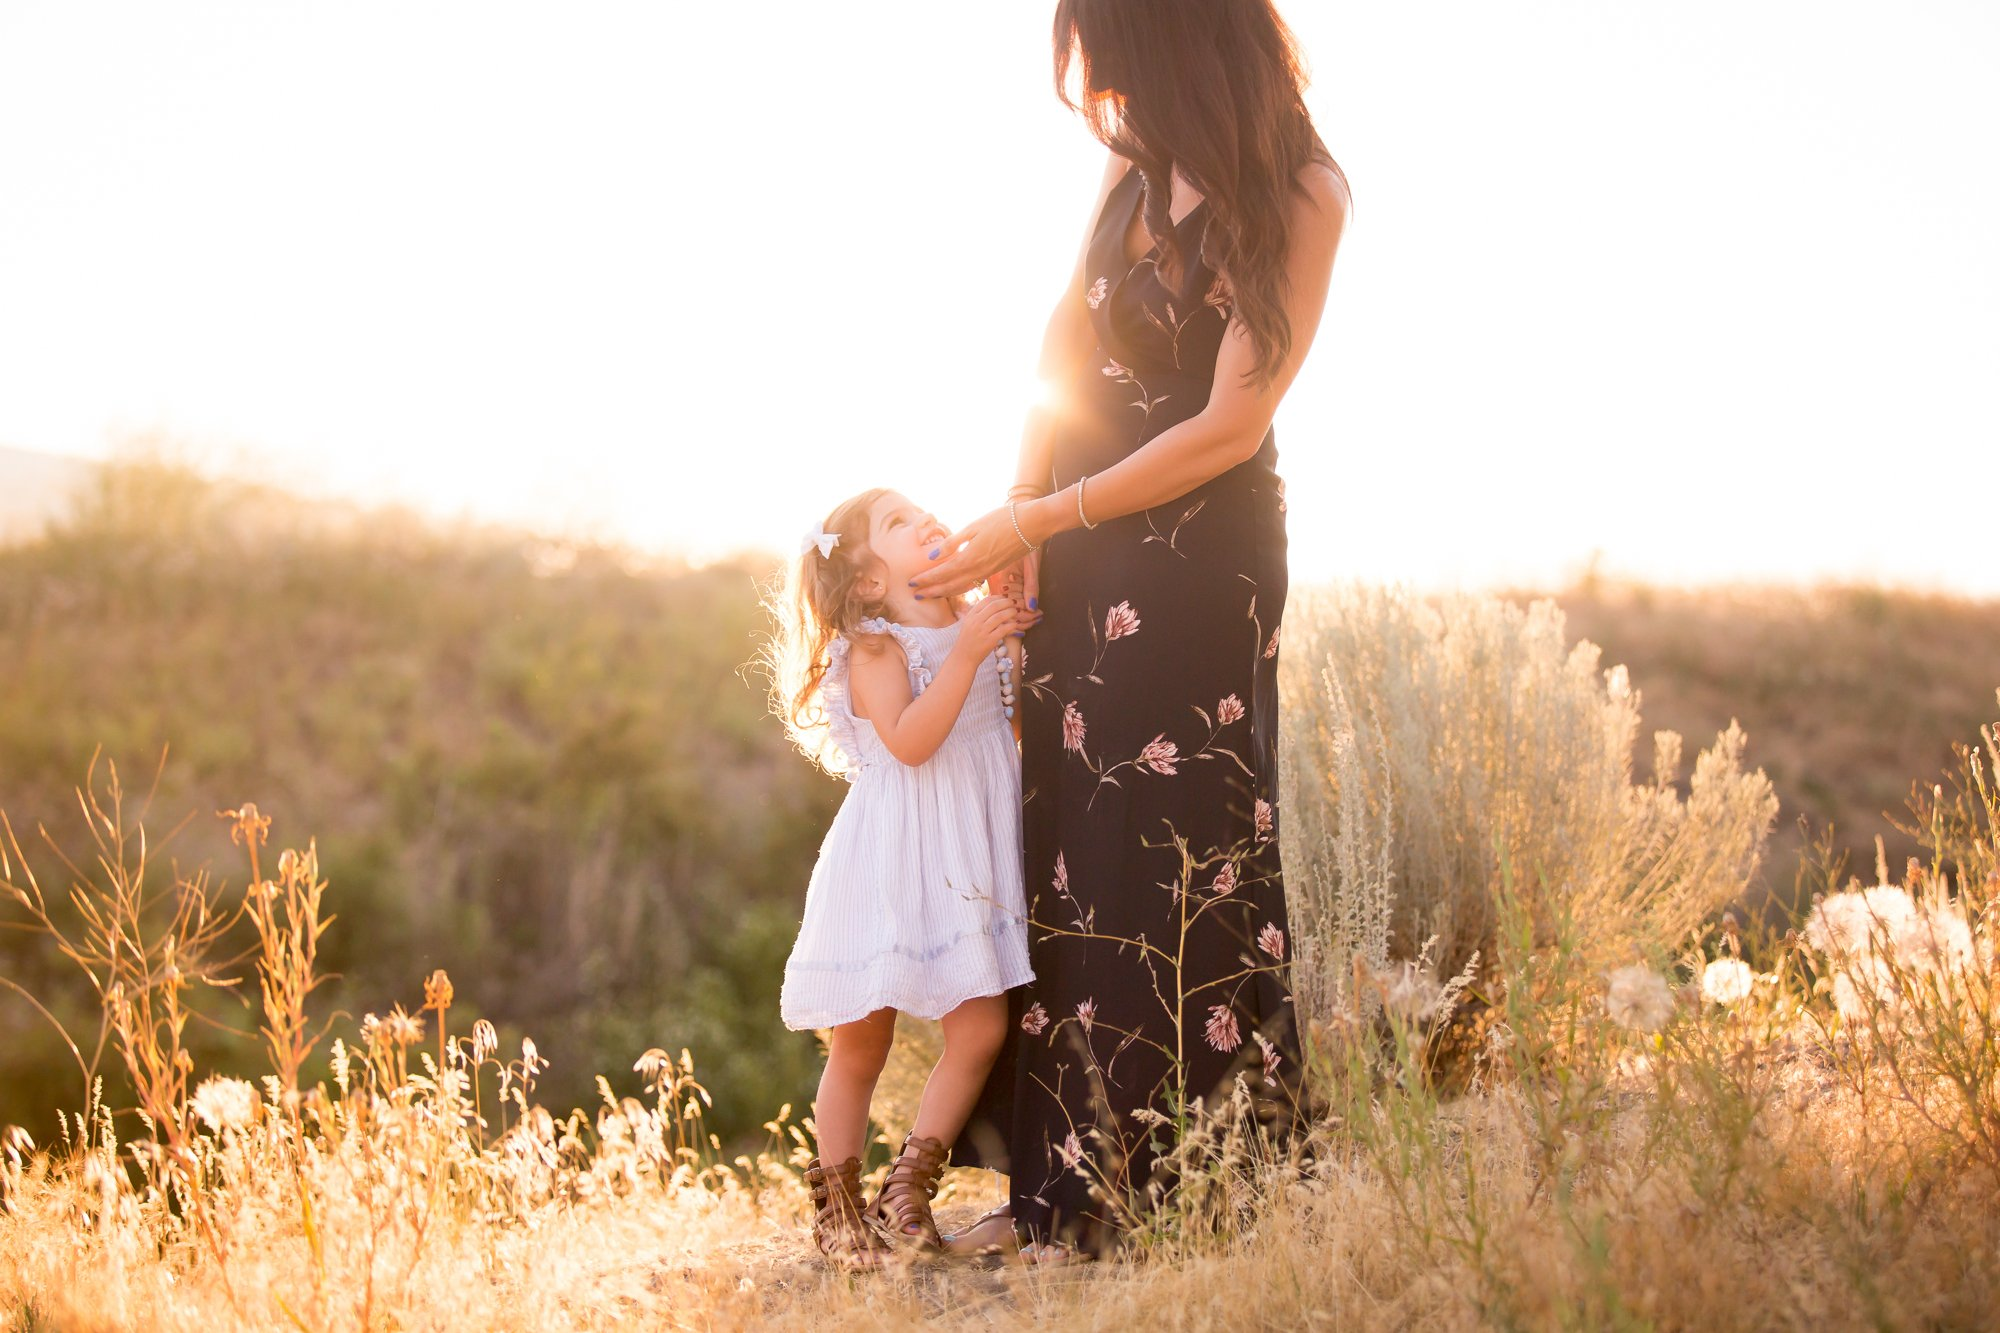 A mom and daughter standing on the sunlight